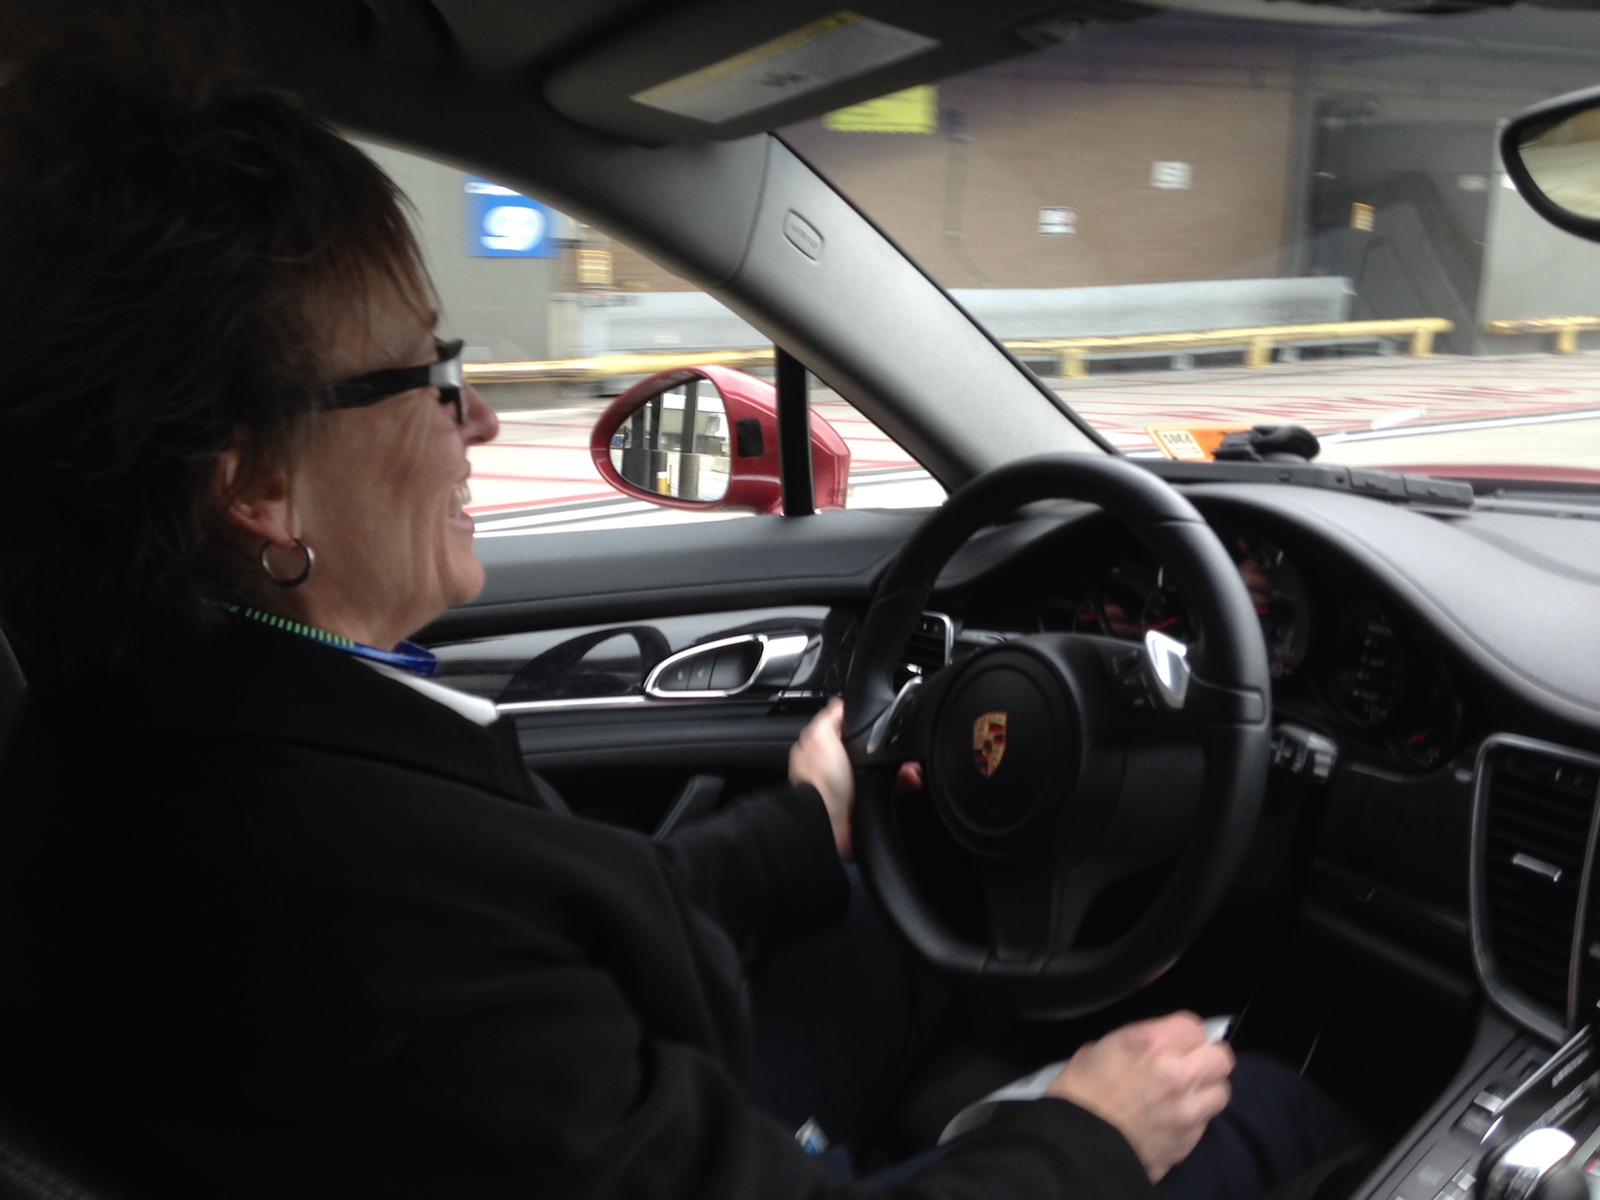 Delta employee extraordinaire Deborah Pratt behind the wheel of a fabulously gorgeous Porsche driving me to my gate so I don't miss my flight to Bozeman.